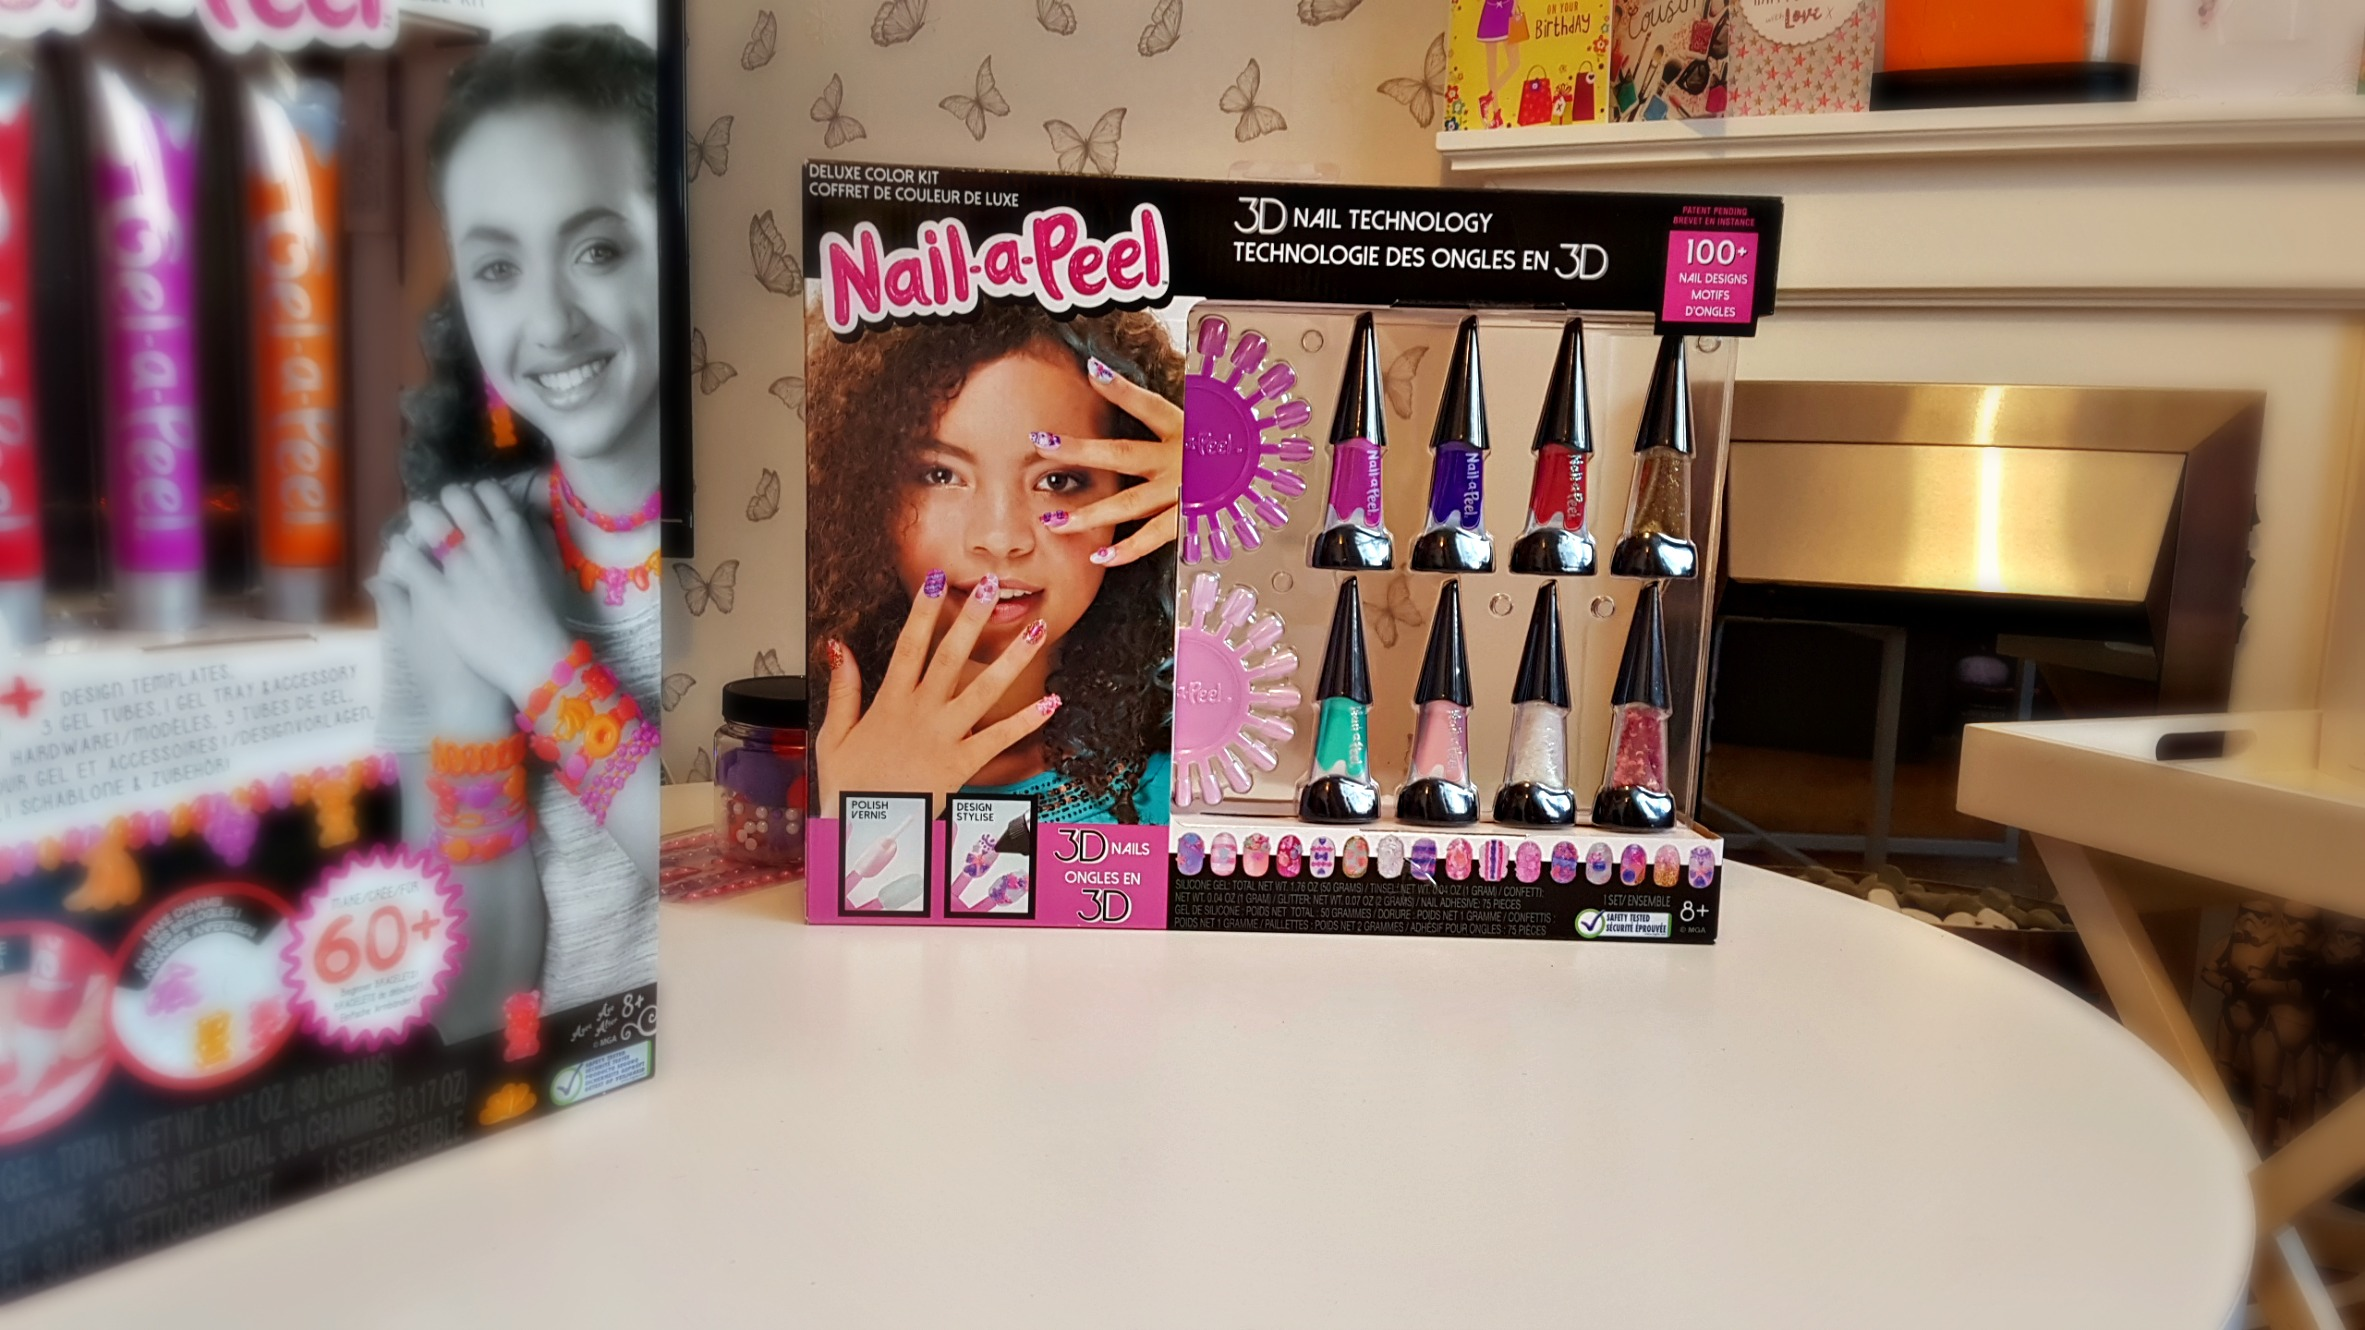 box of nail-a-pell deluxe set on a whitw table in front of a fireplace